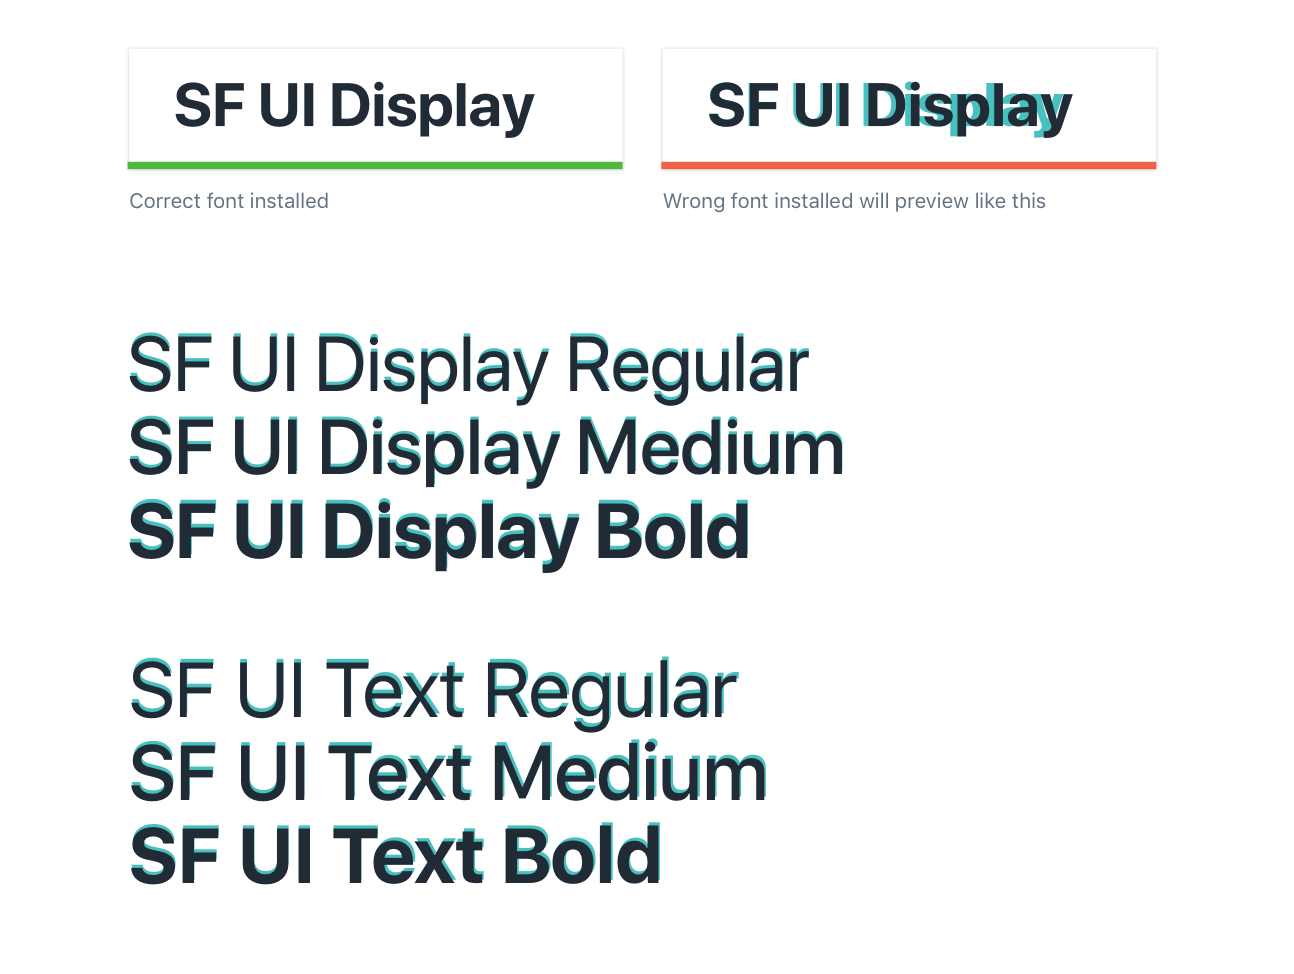 Font used in design is not the as the latest version from